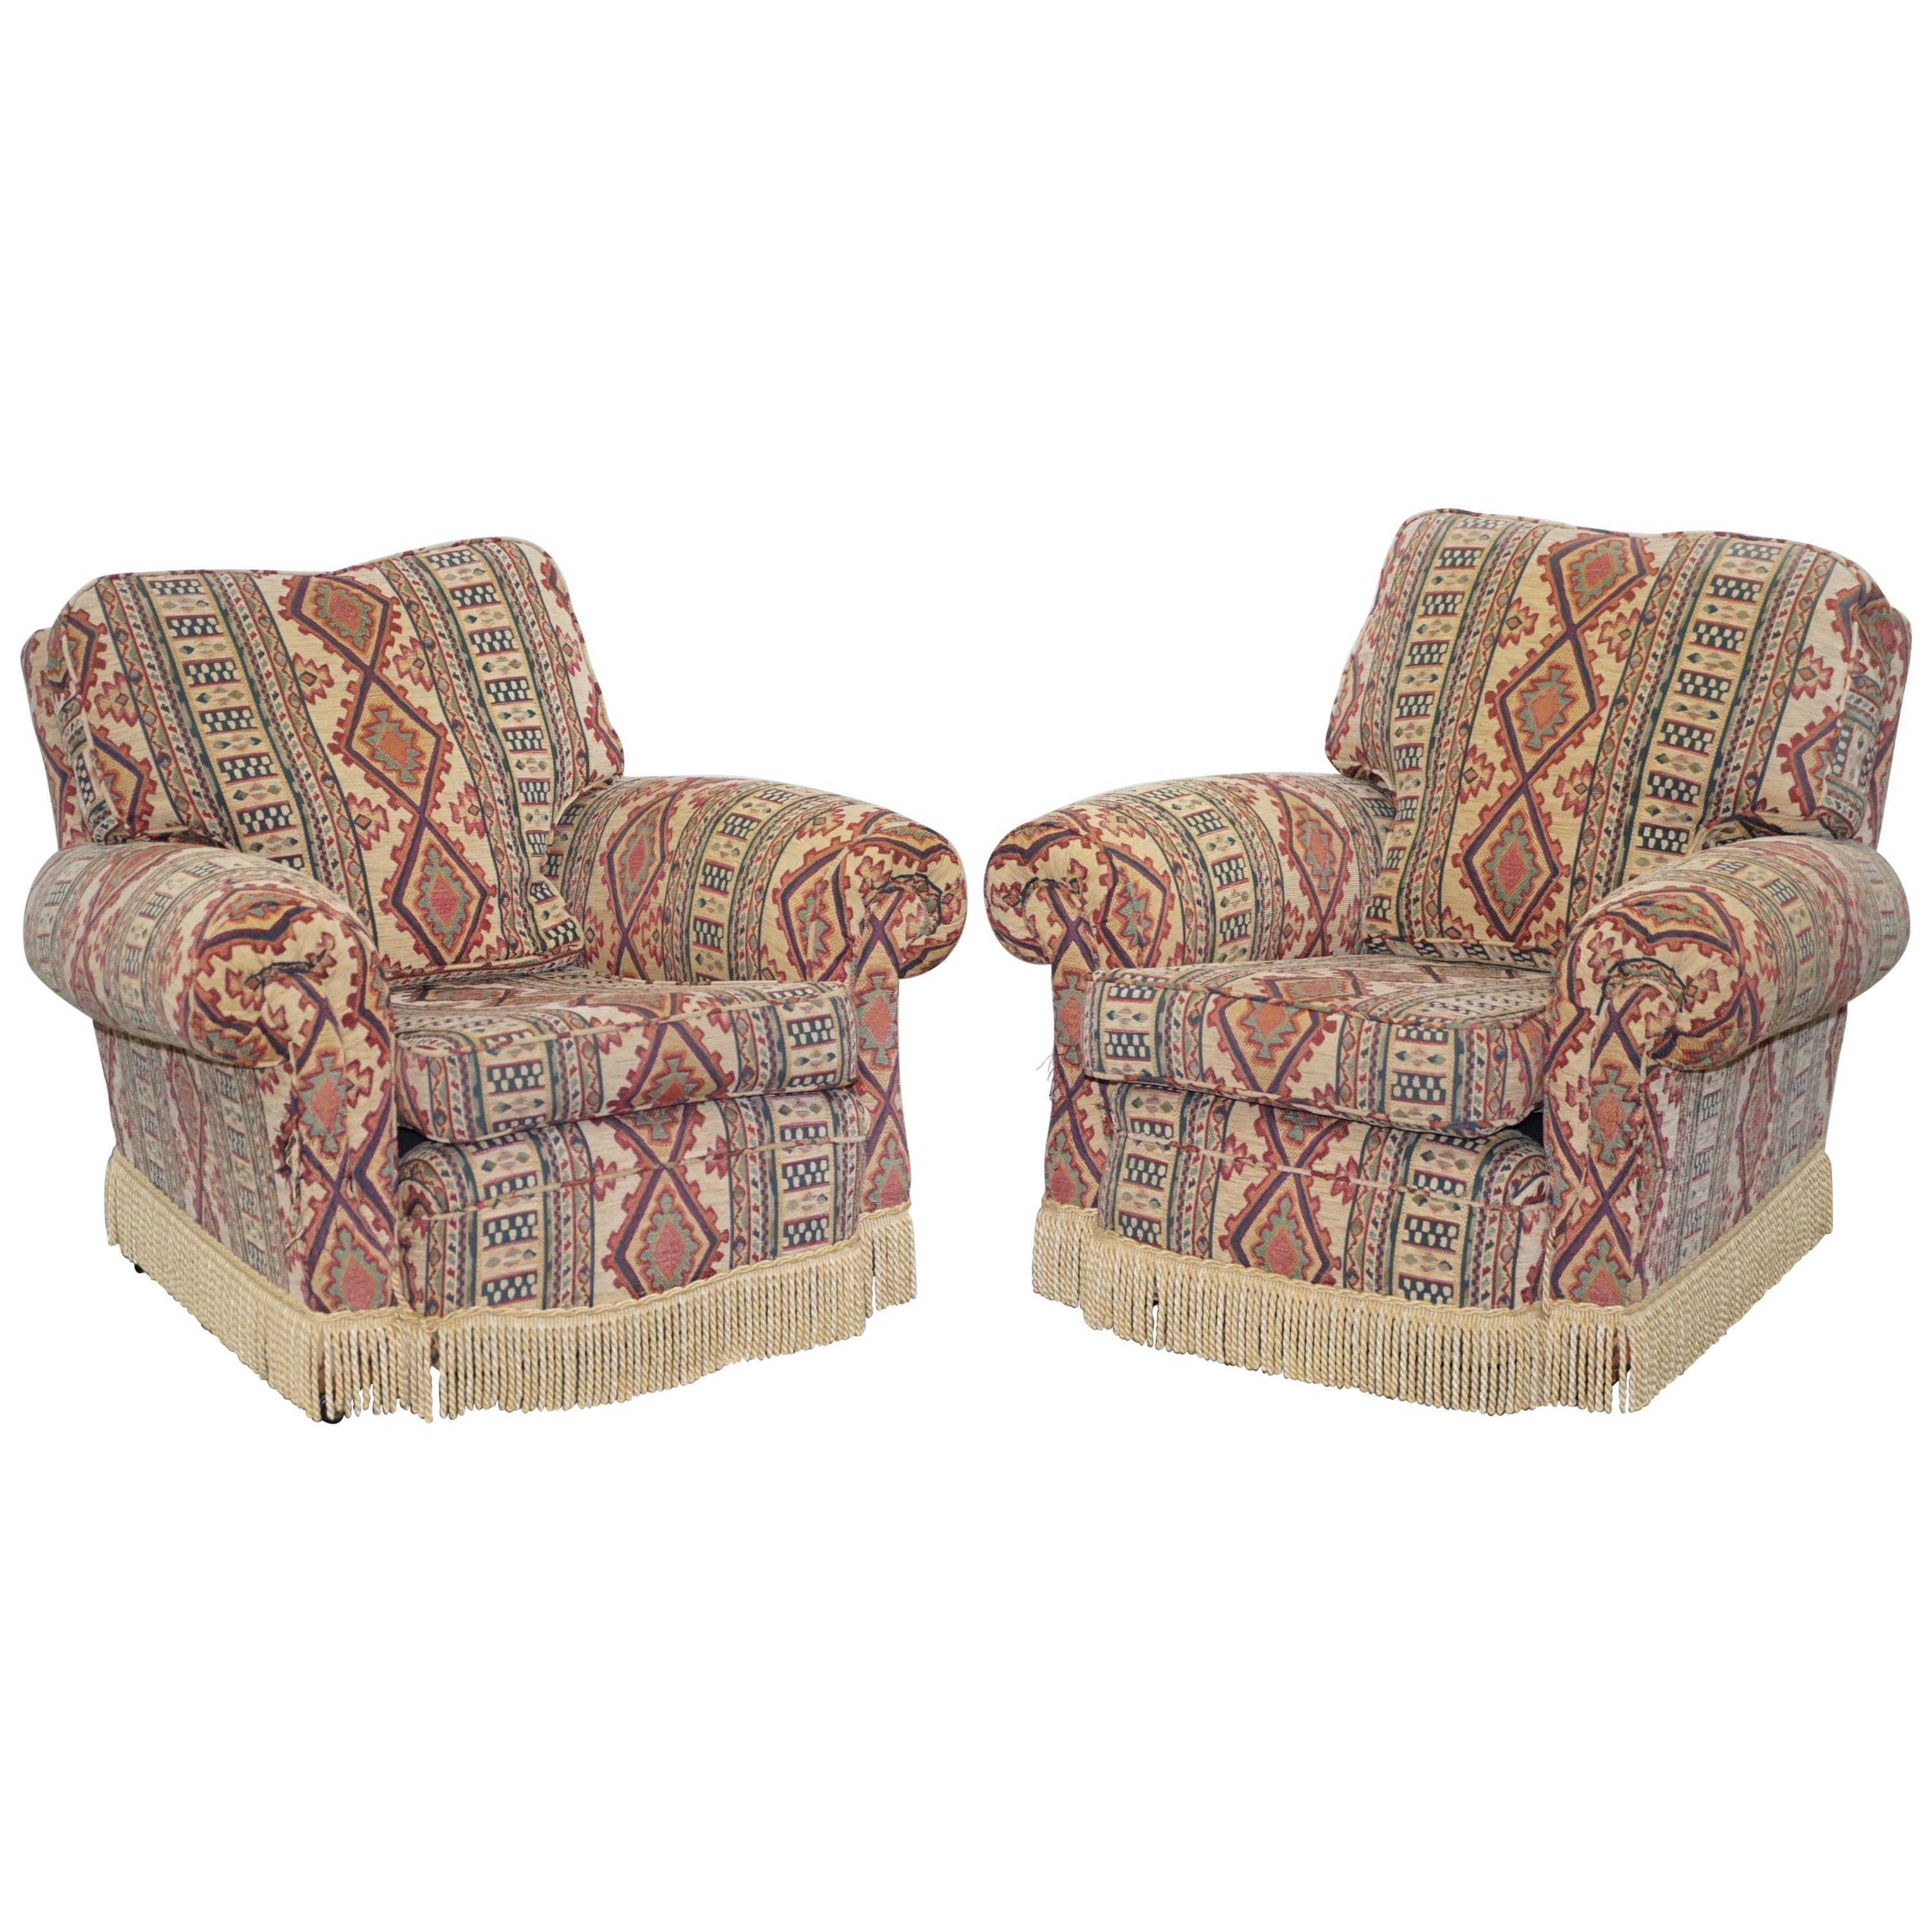 Pair of Midcentury Fully Sprung Art Deco Style Kilim Rug Upholstered Armchairs